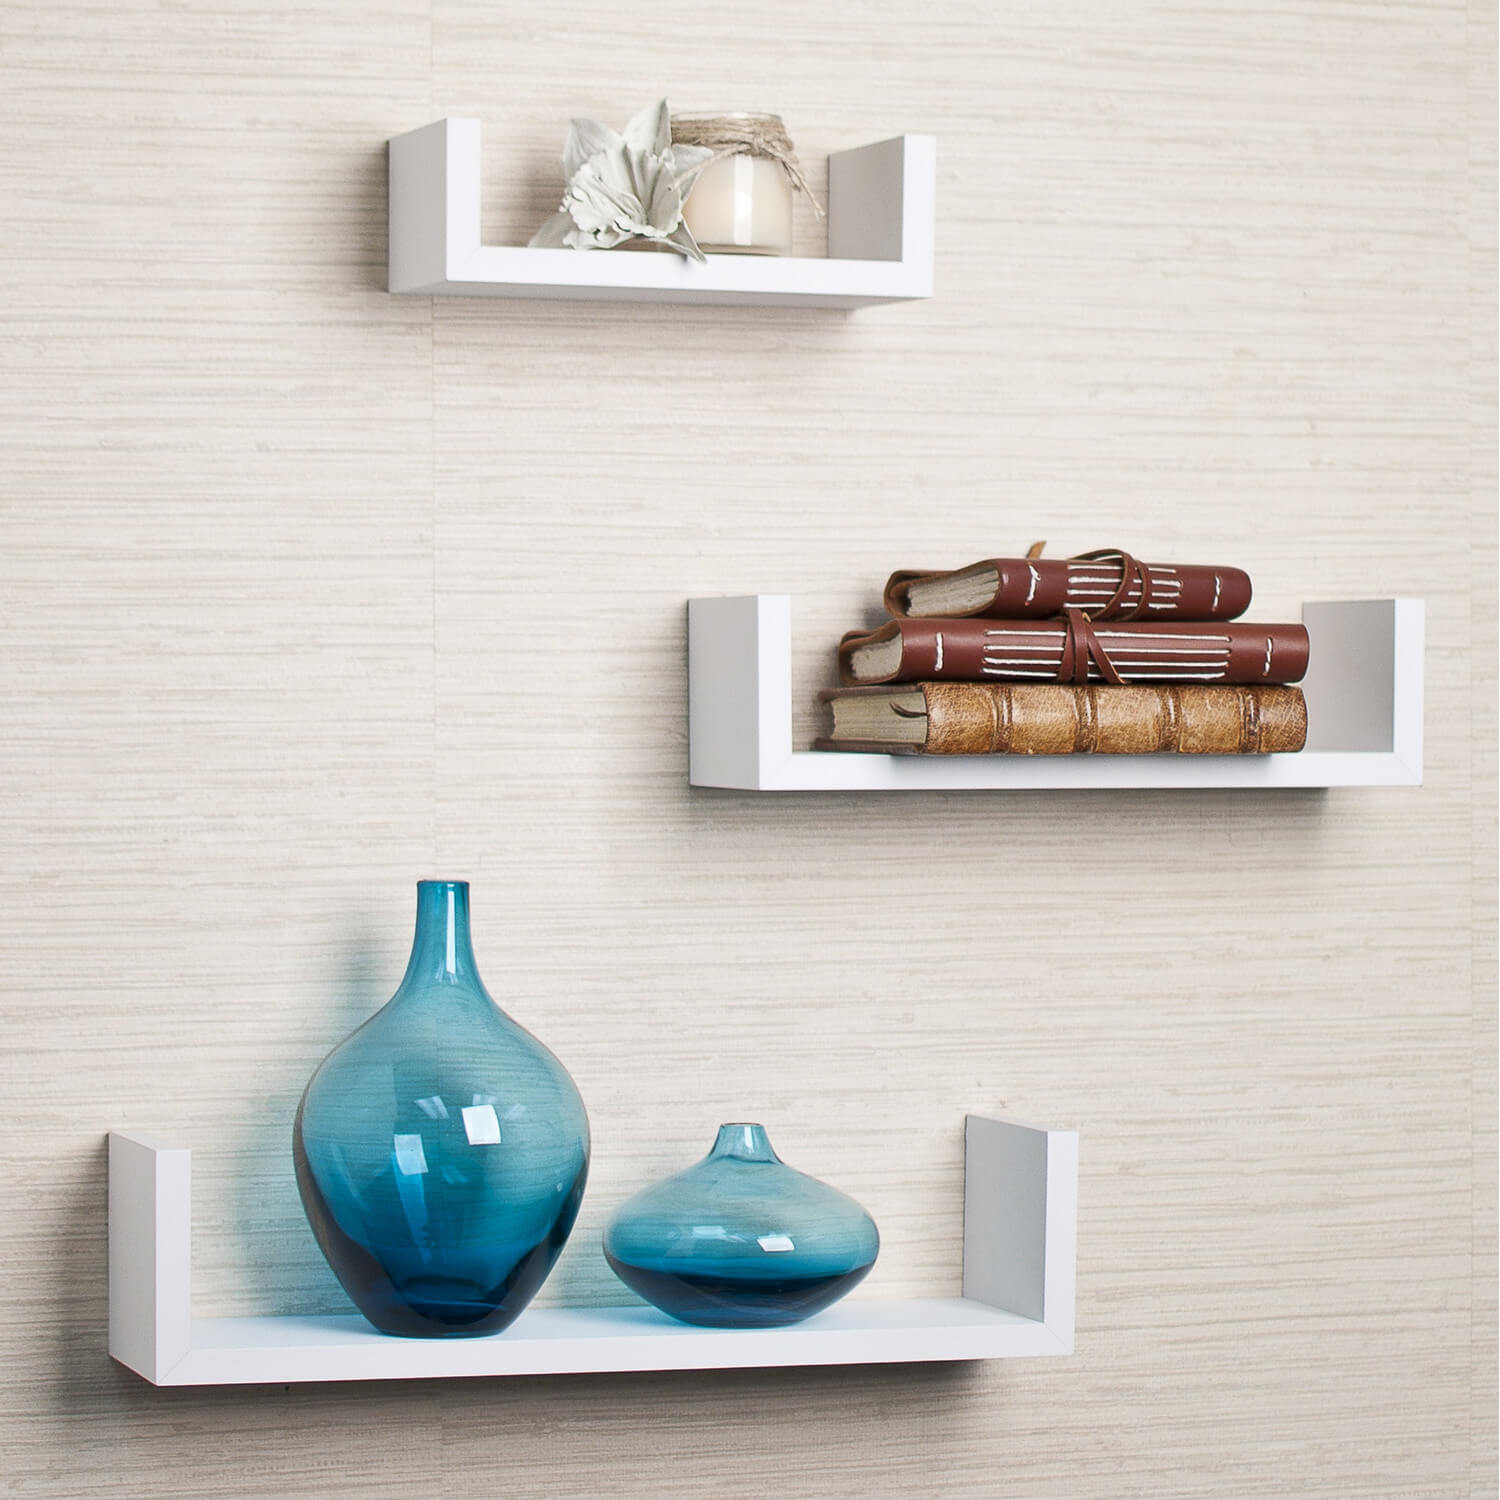 These smaller shelves would look great on the wall behind a free-standing bathtub. You could use them to store your shampoo, conditioner, and soaps.